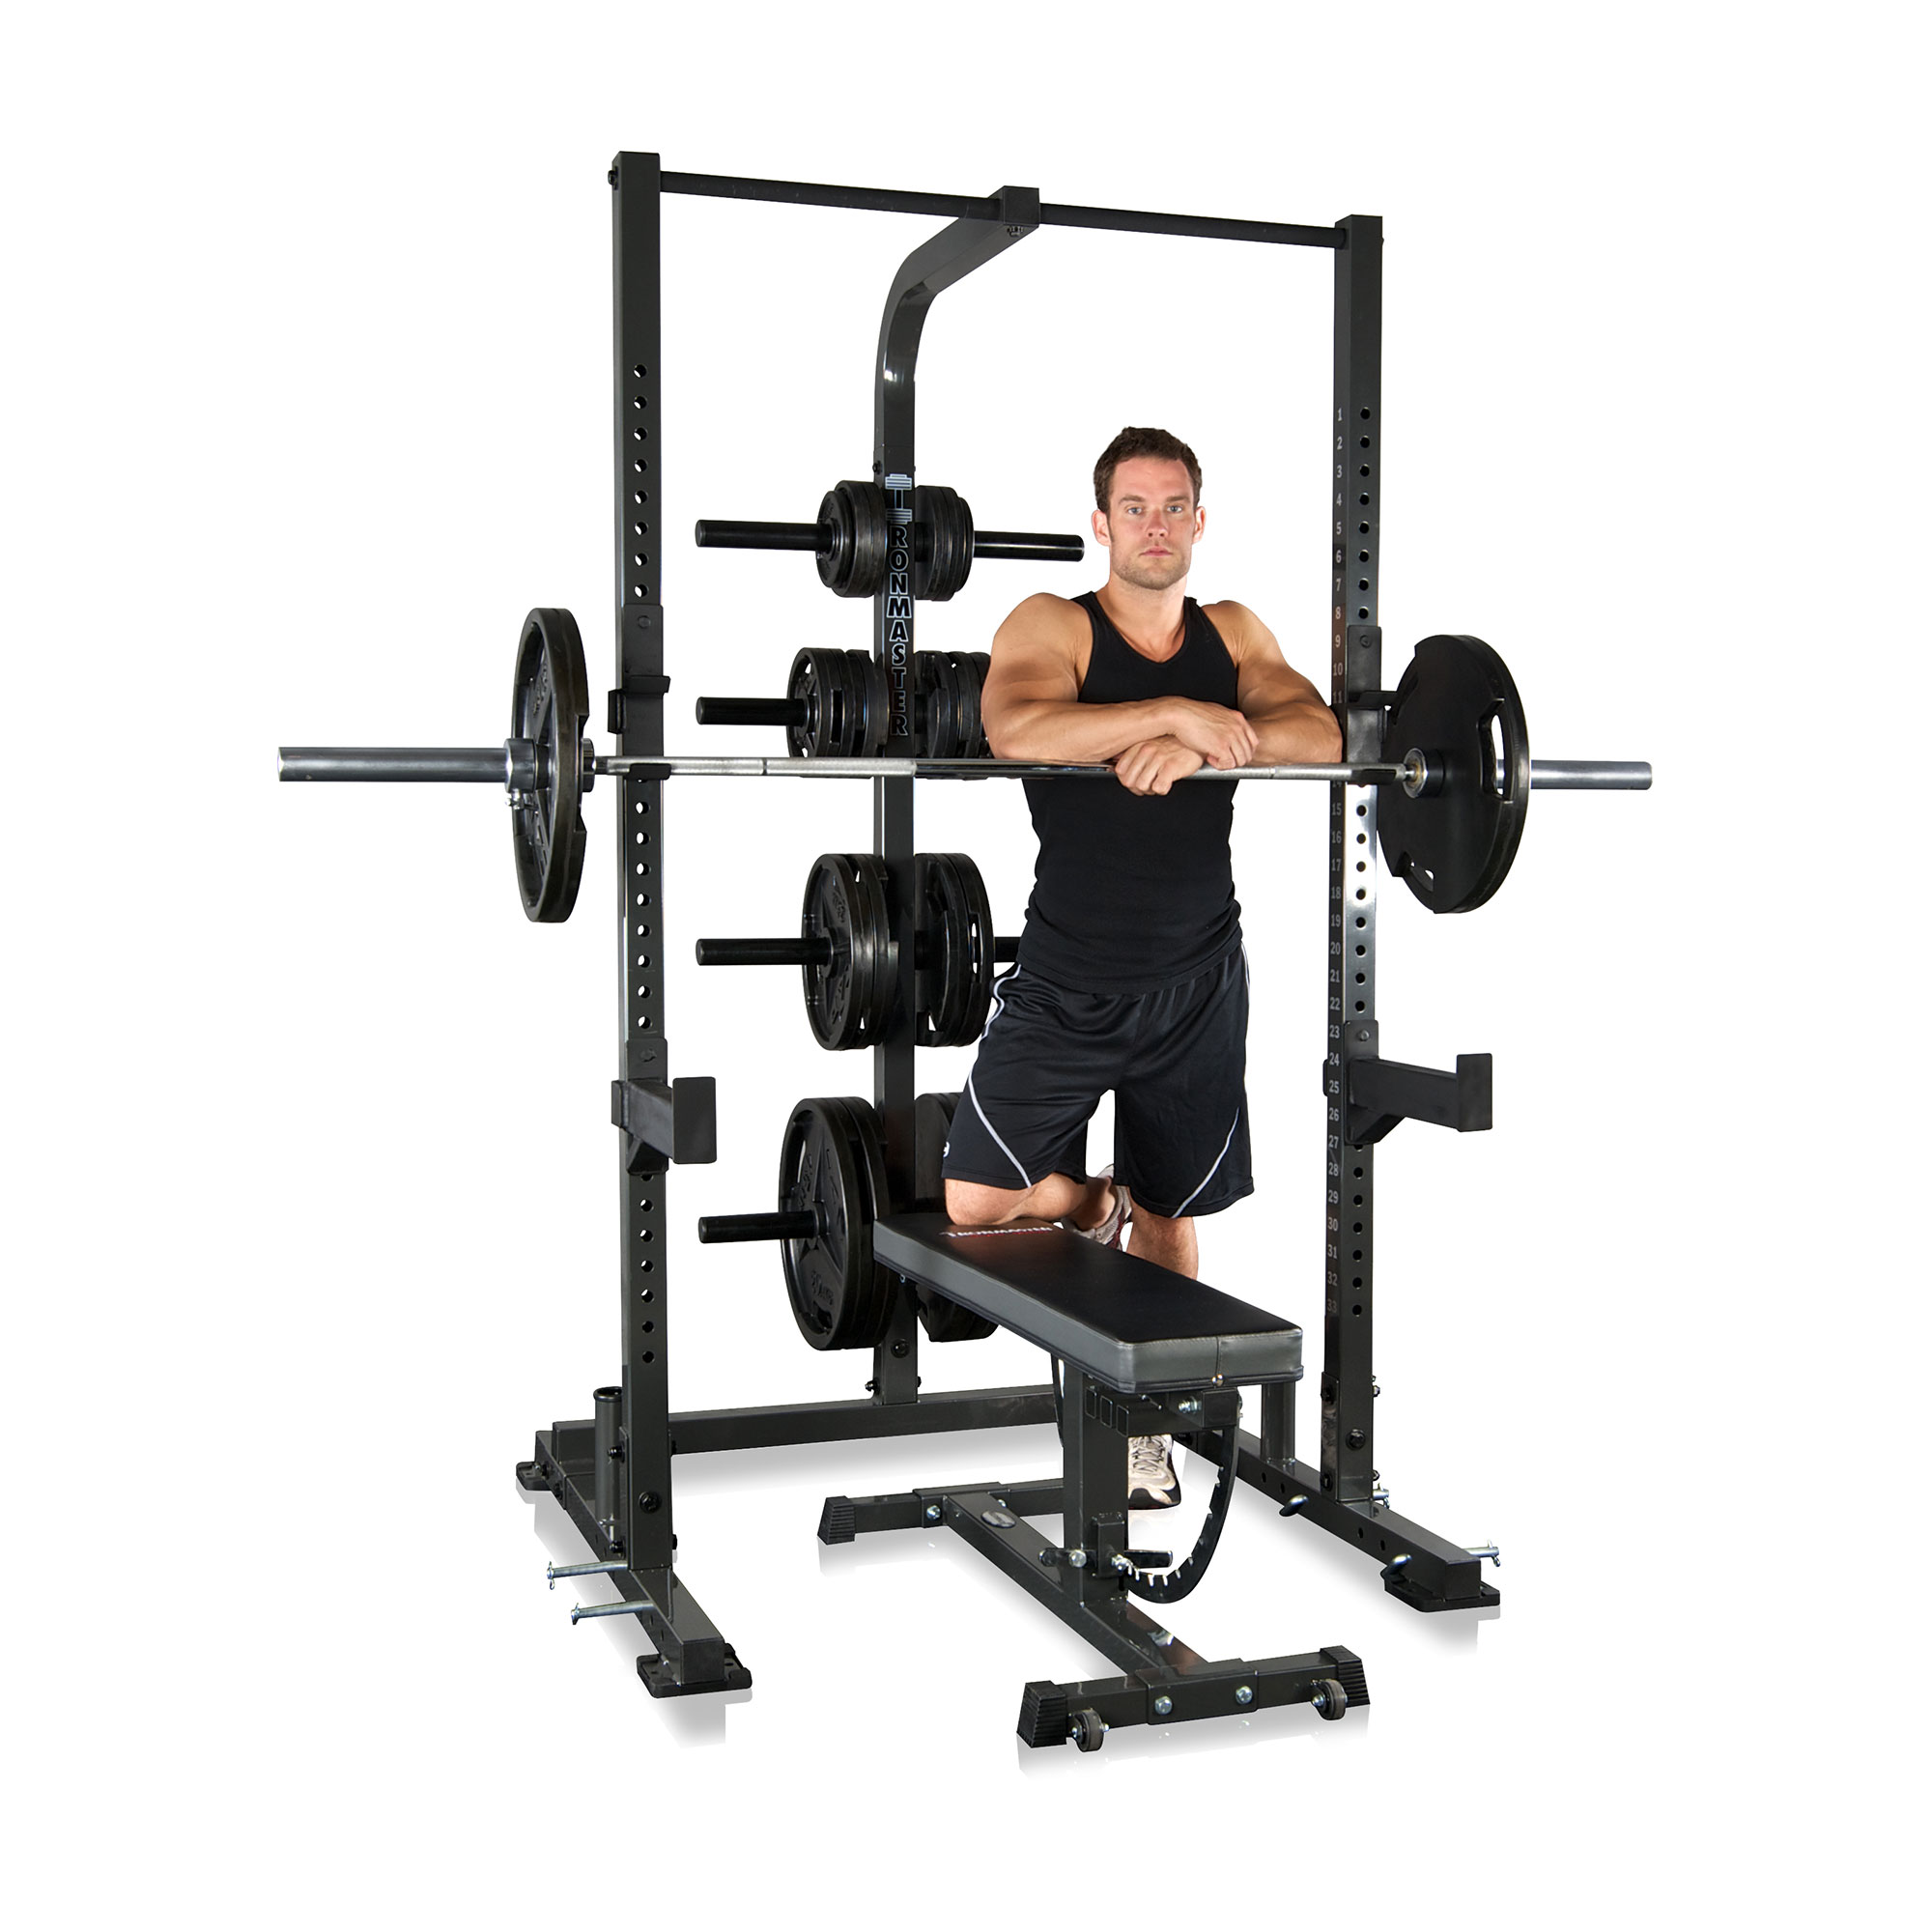 holder home rack barbell dumbbell gym tree storage weight pin stand plate